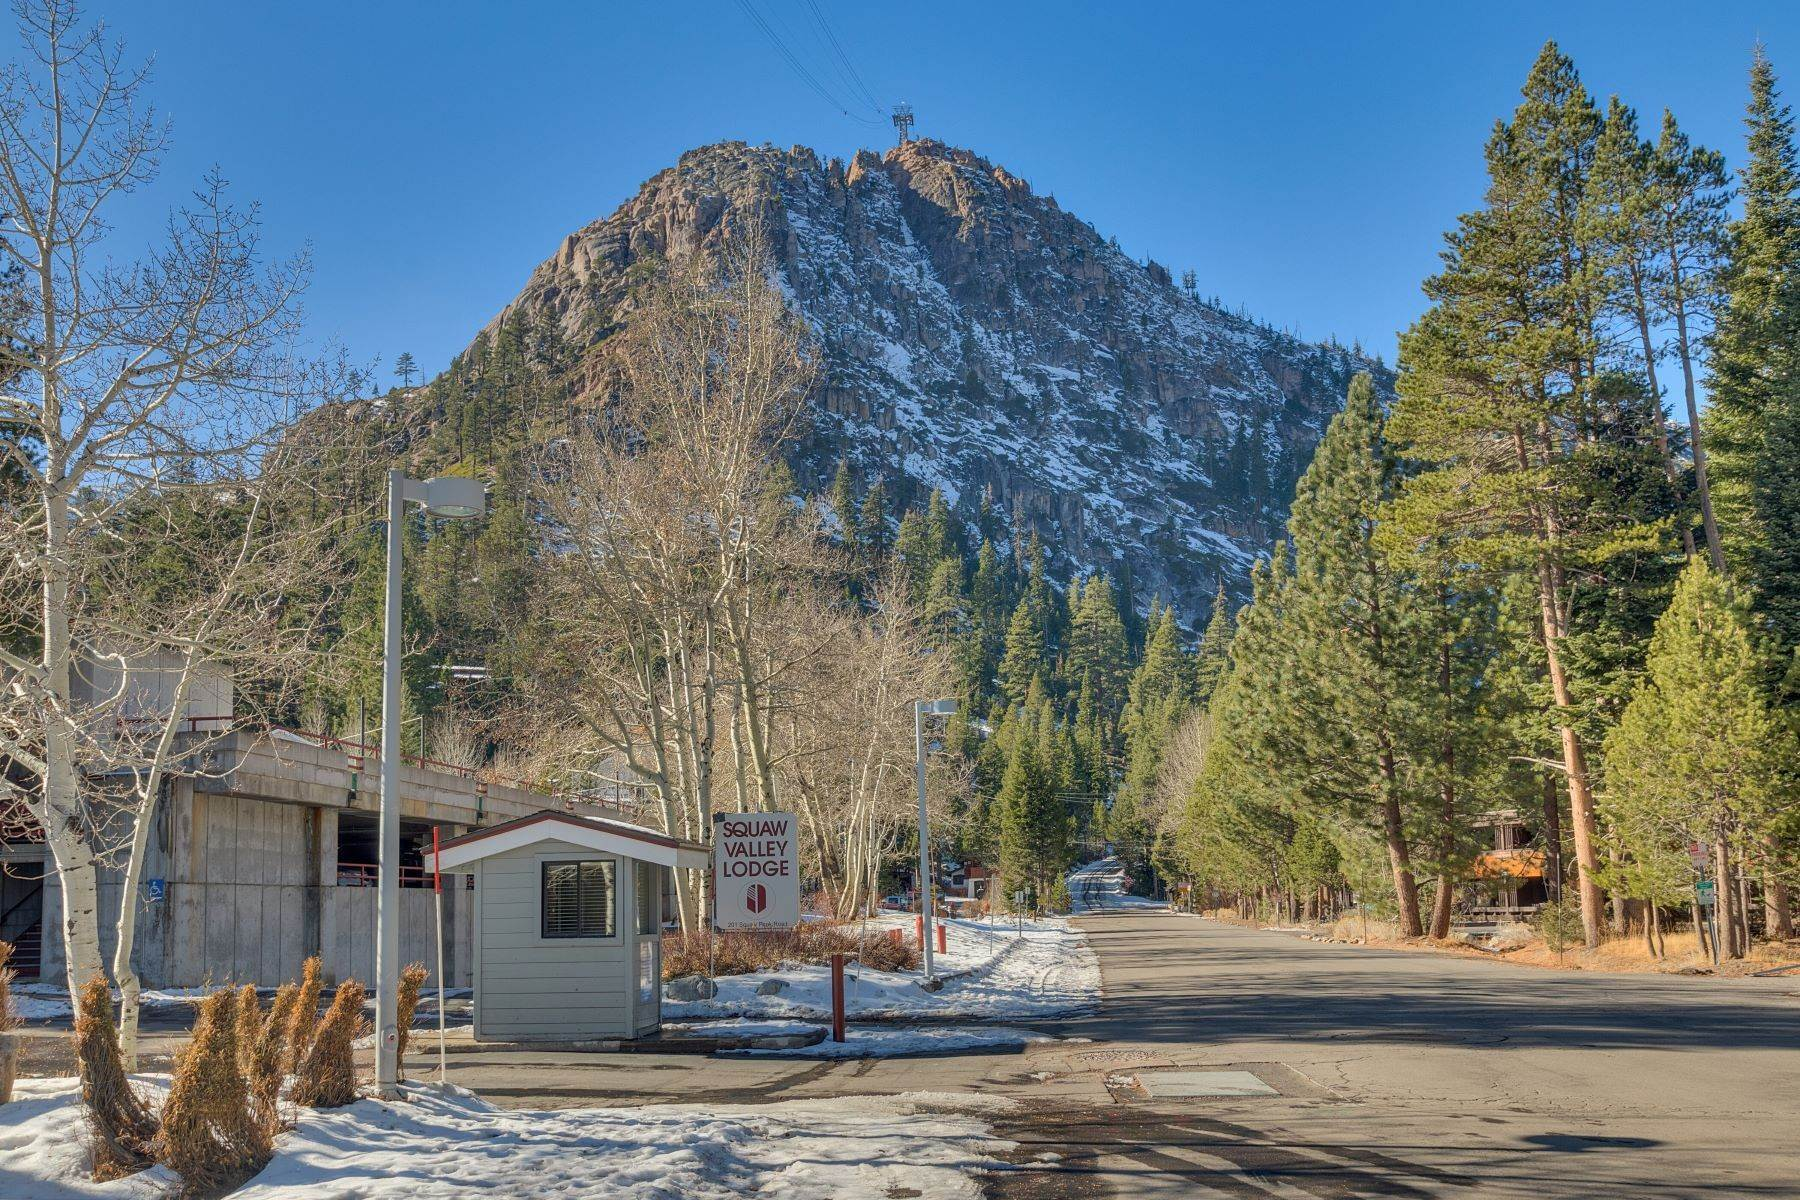 Property for Active at Squaw Valley Lodge 201 Squaw Peak Road # 718 & 719 Olympic Valley, California 96146 United States